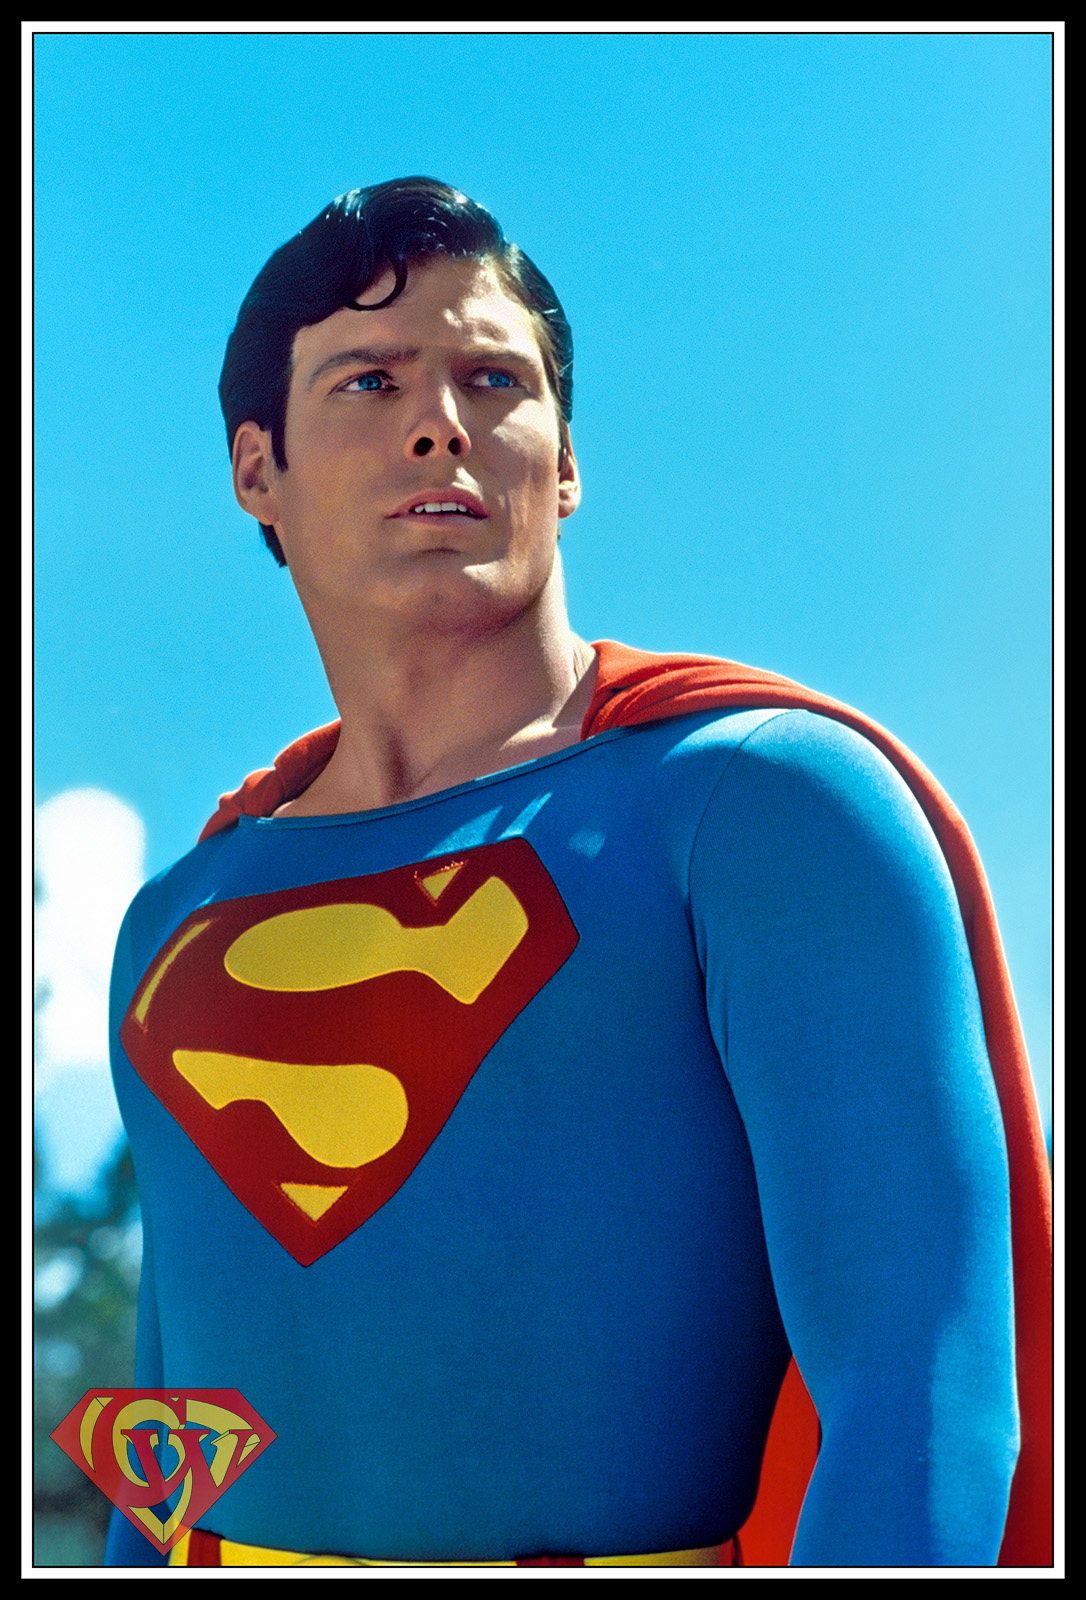 Christopher Reeve photographed by Curt Gunther in Gallup, New Mexico, June 1978.